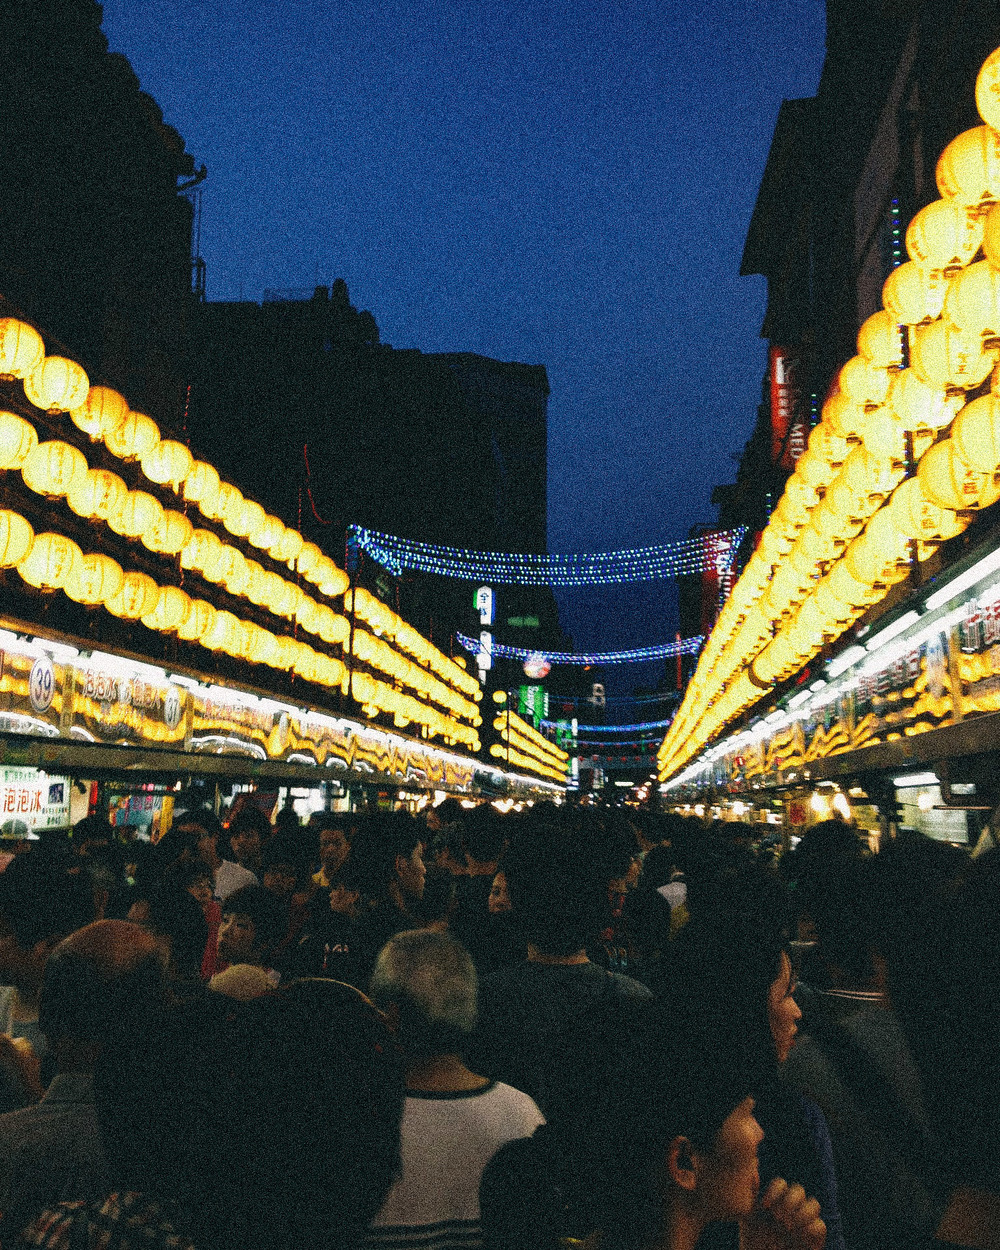 Miaokou Night Market crowds